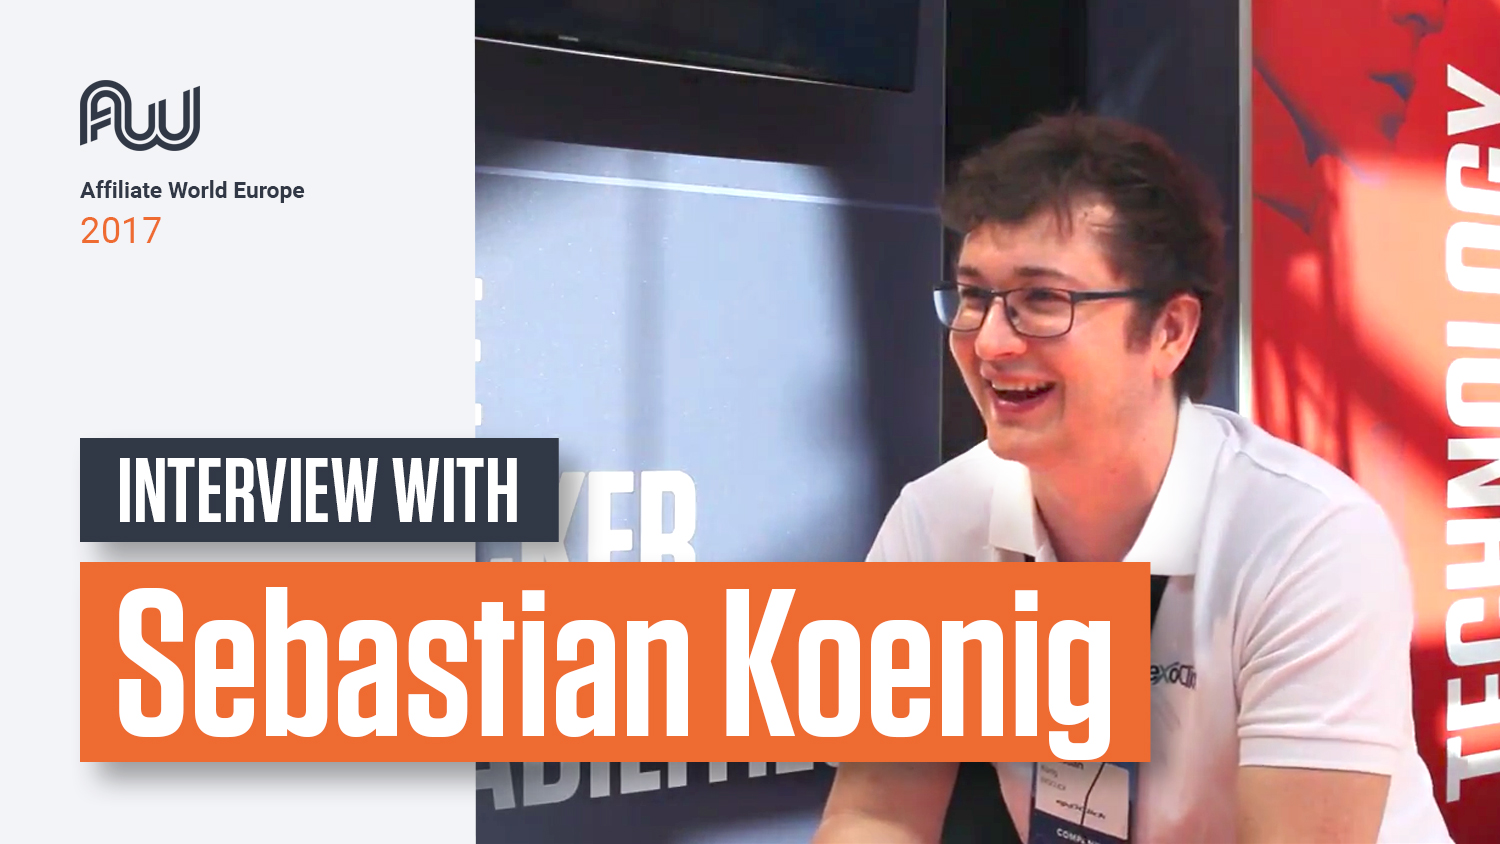 sebastian koenig awe interview